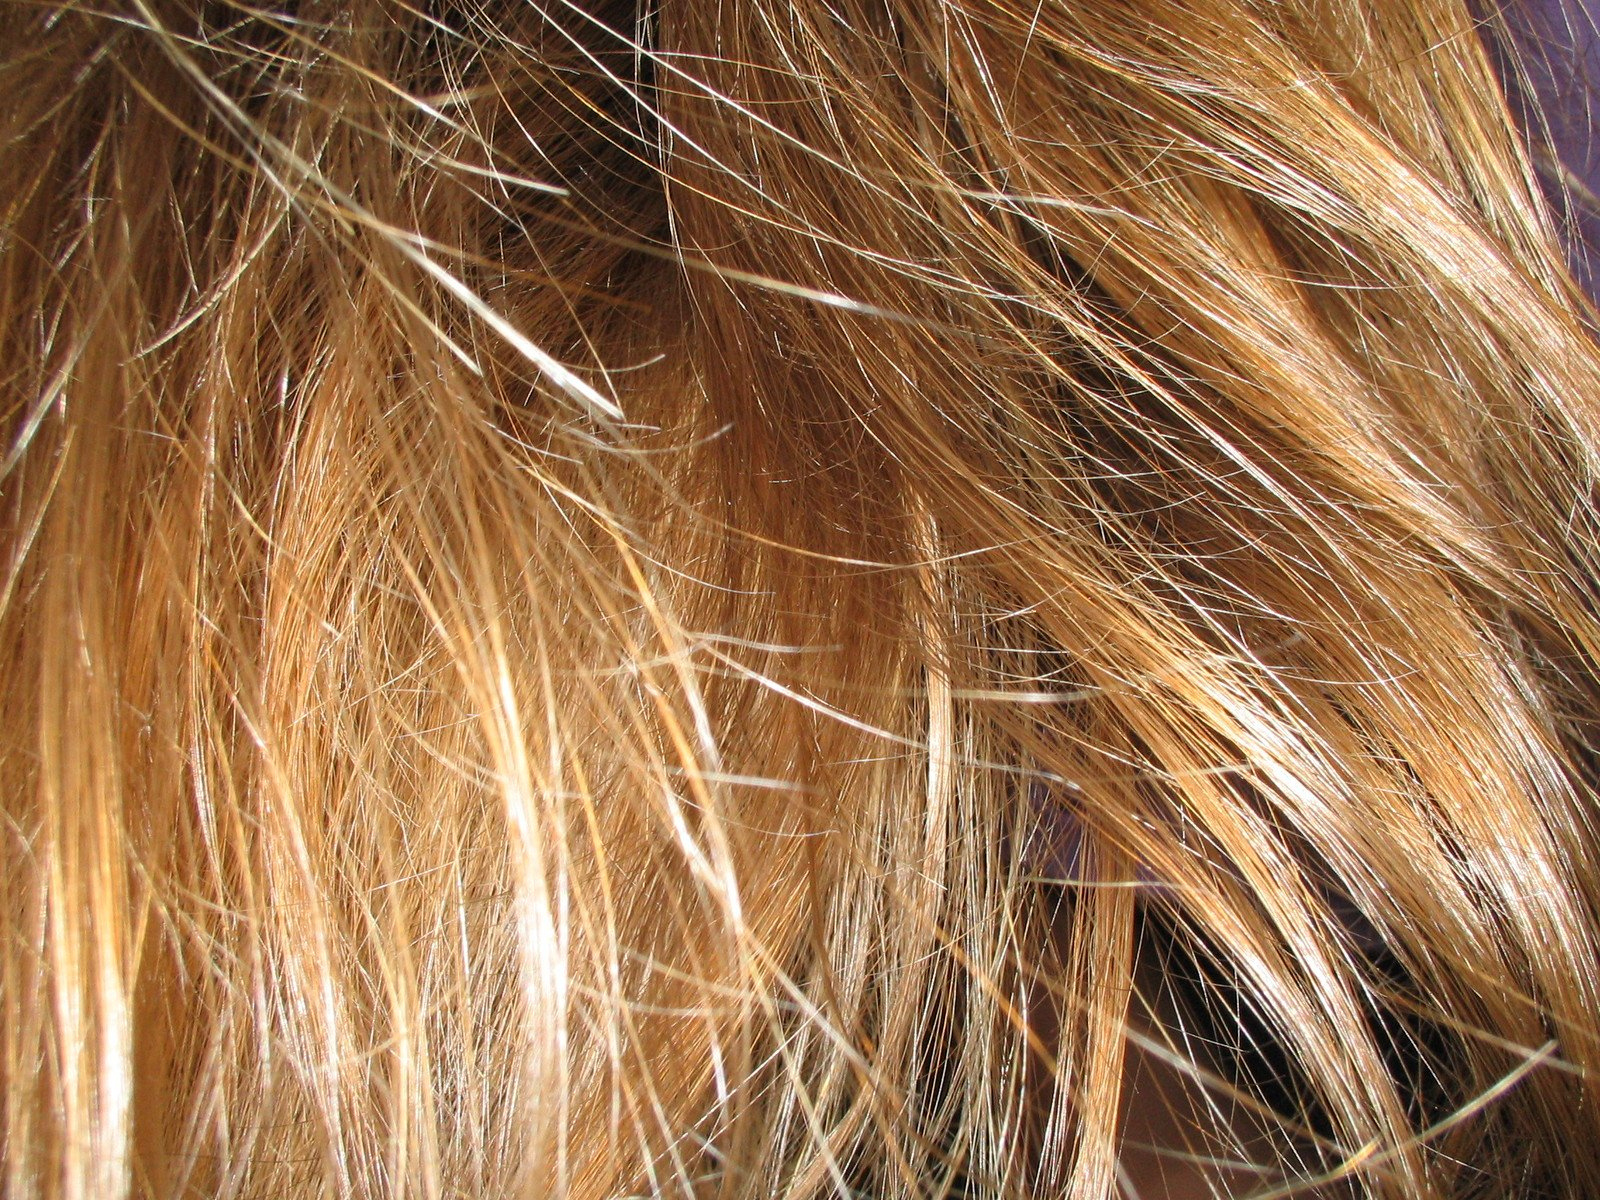 To develop a good combing habit, you need to follow certain rules. (Image: freeimages / CC0 1.0)